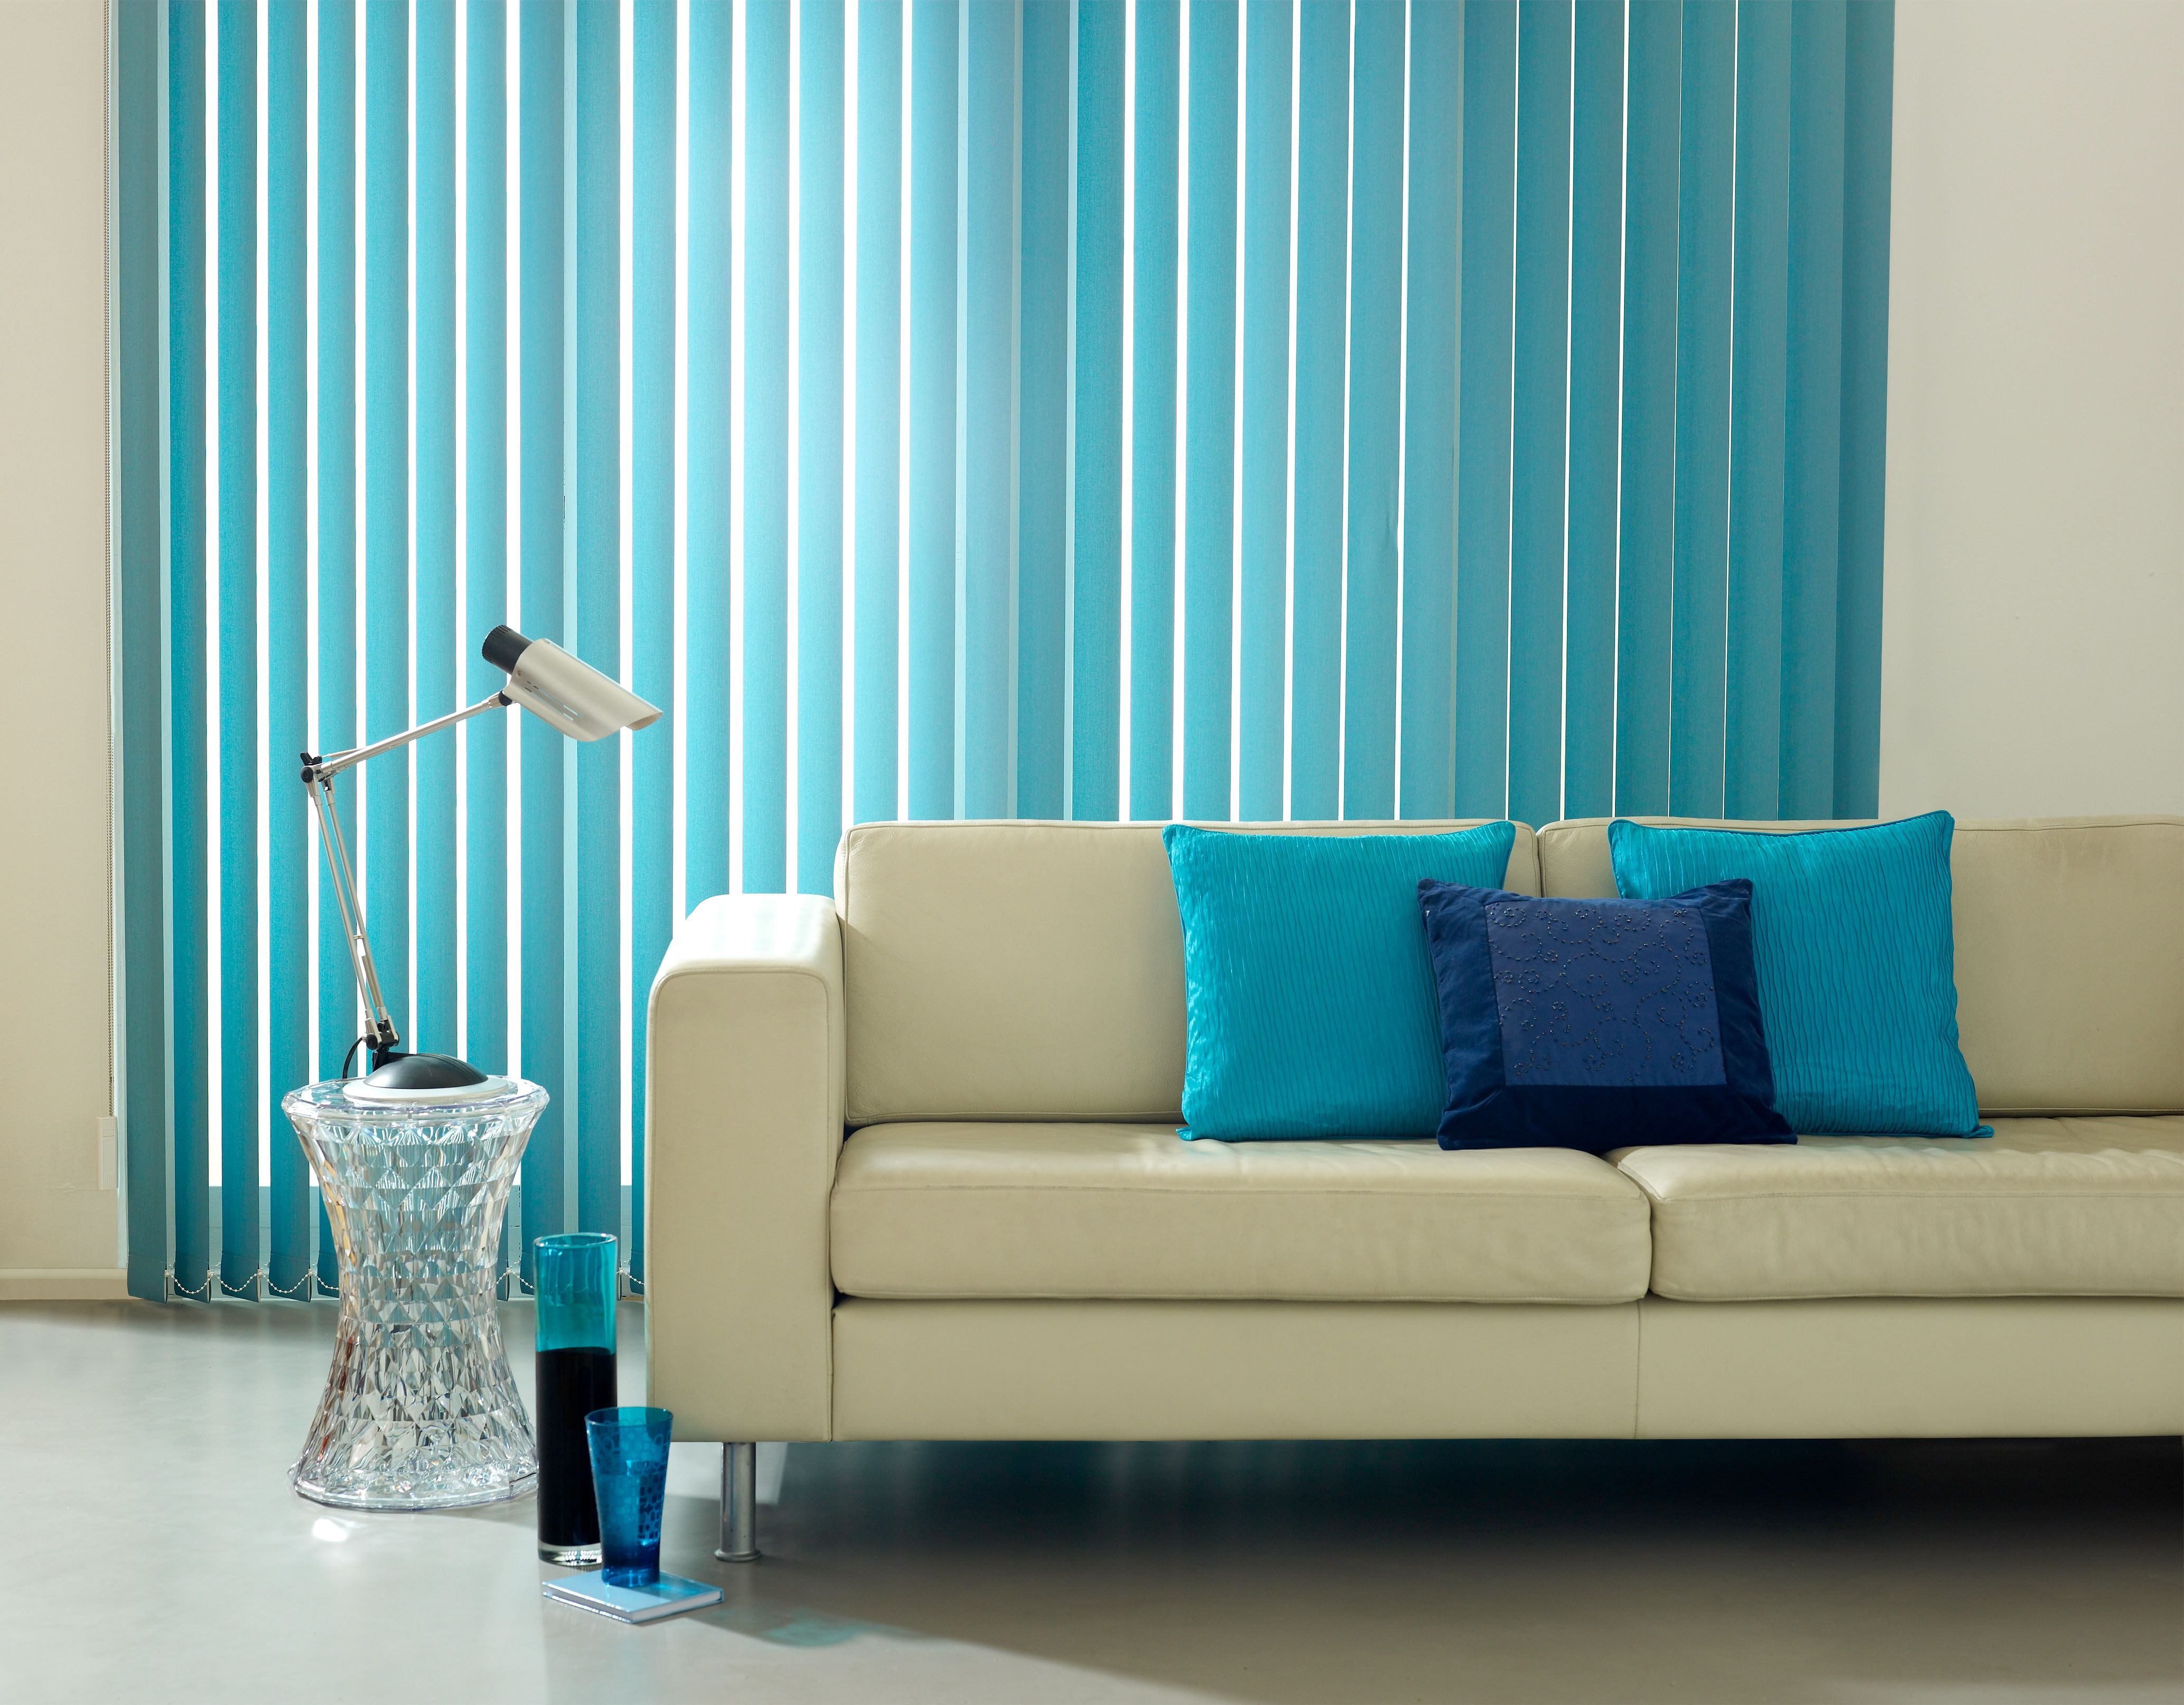 trendy office designs blinds. This Habitat Turquoise Vertical Blind Is The Perfect Shade, With Just Right Amount Of Trendy Office Designs Blinds